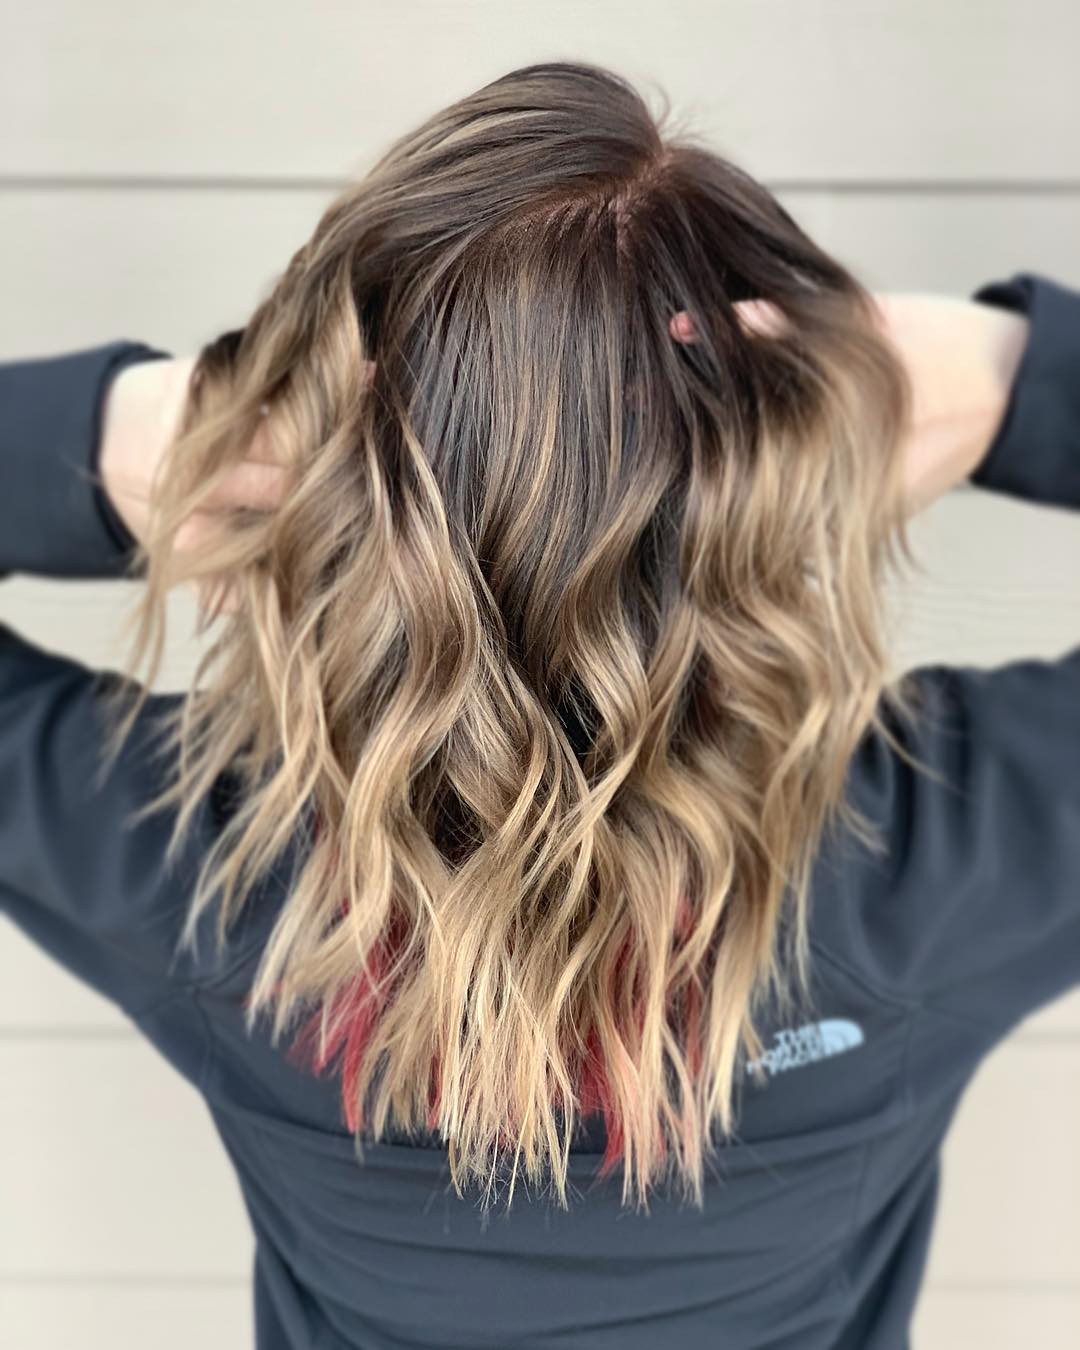 Best ideas about Girls Haircuts 2019 . Save or Pin Hairstyles for girls 2019 The most stylish options and Now.